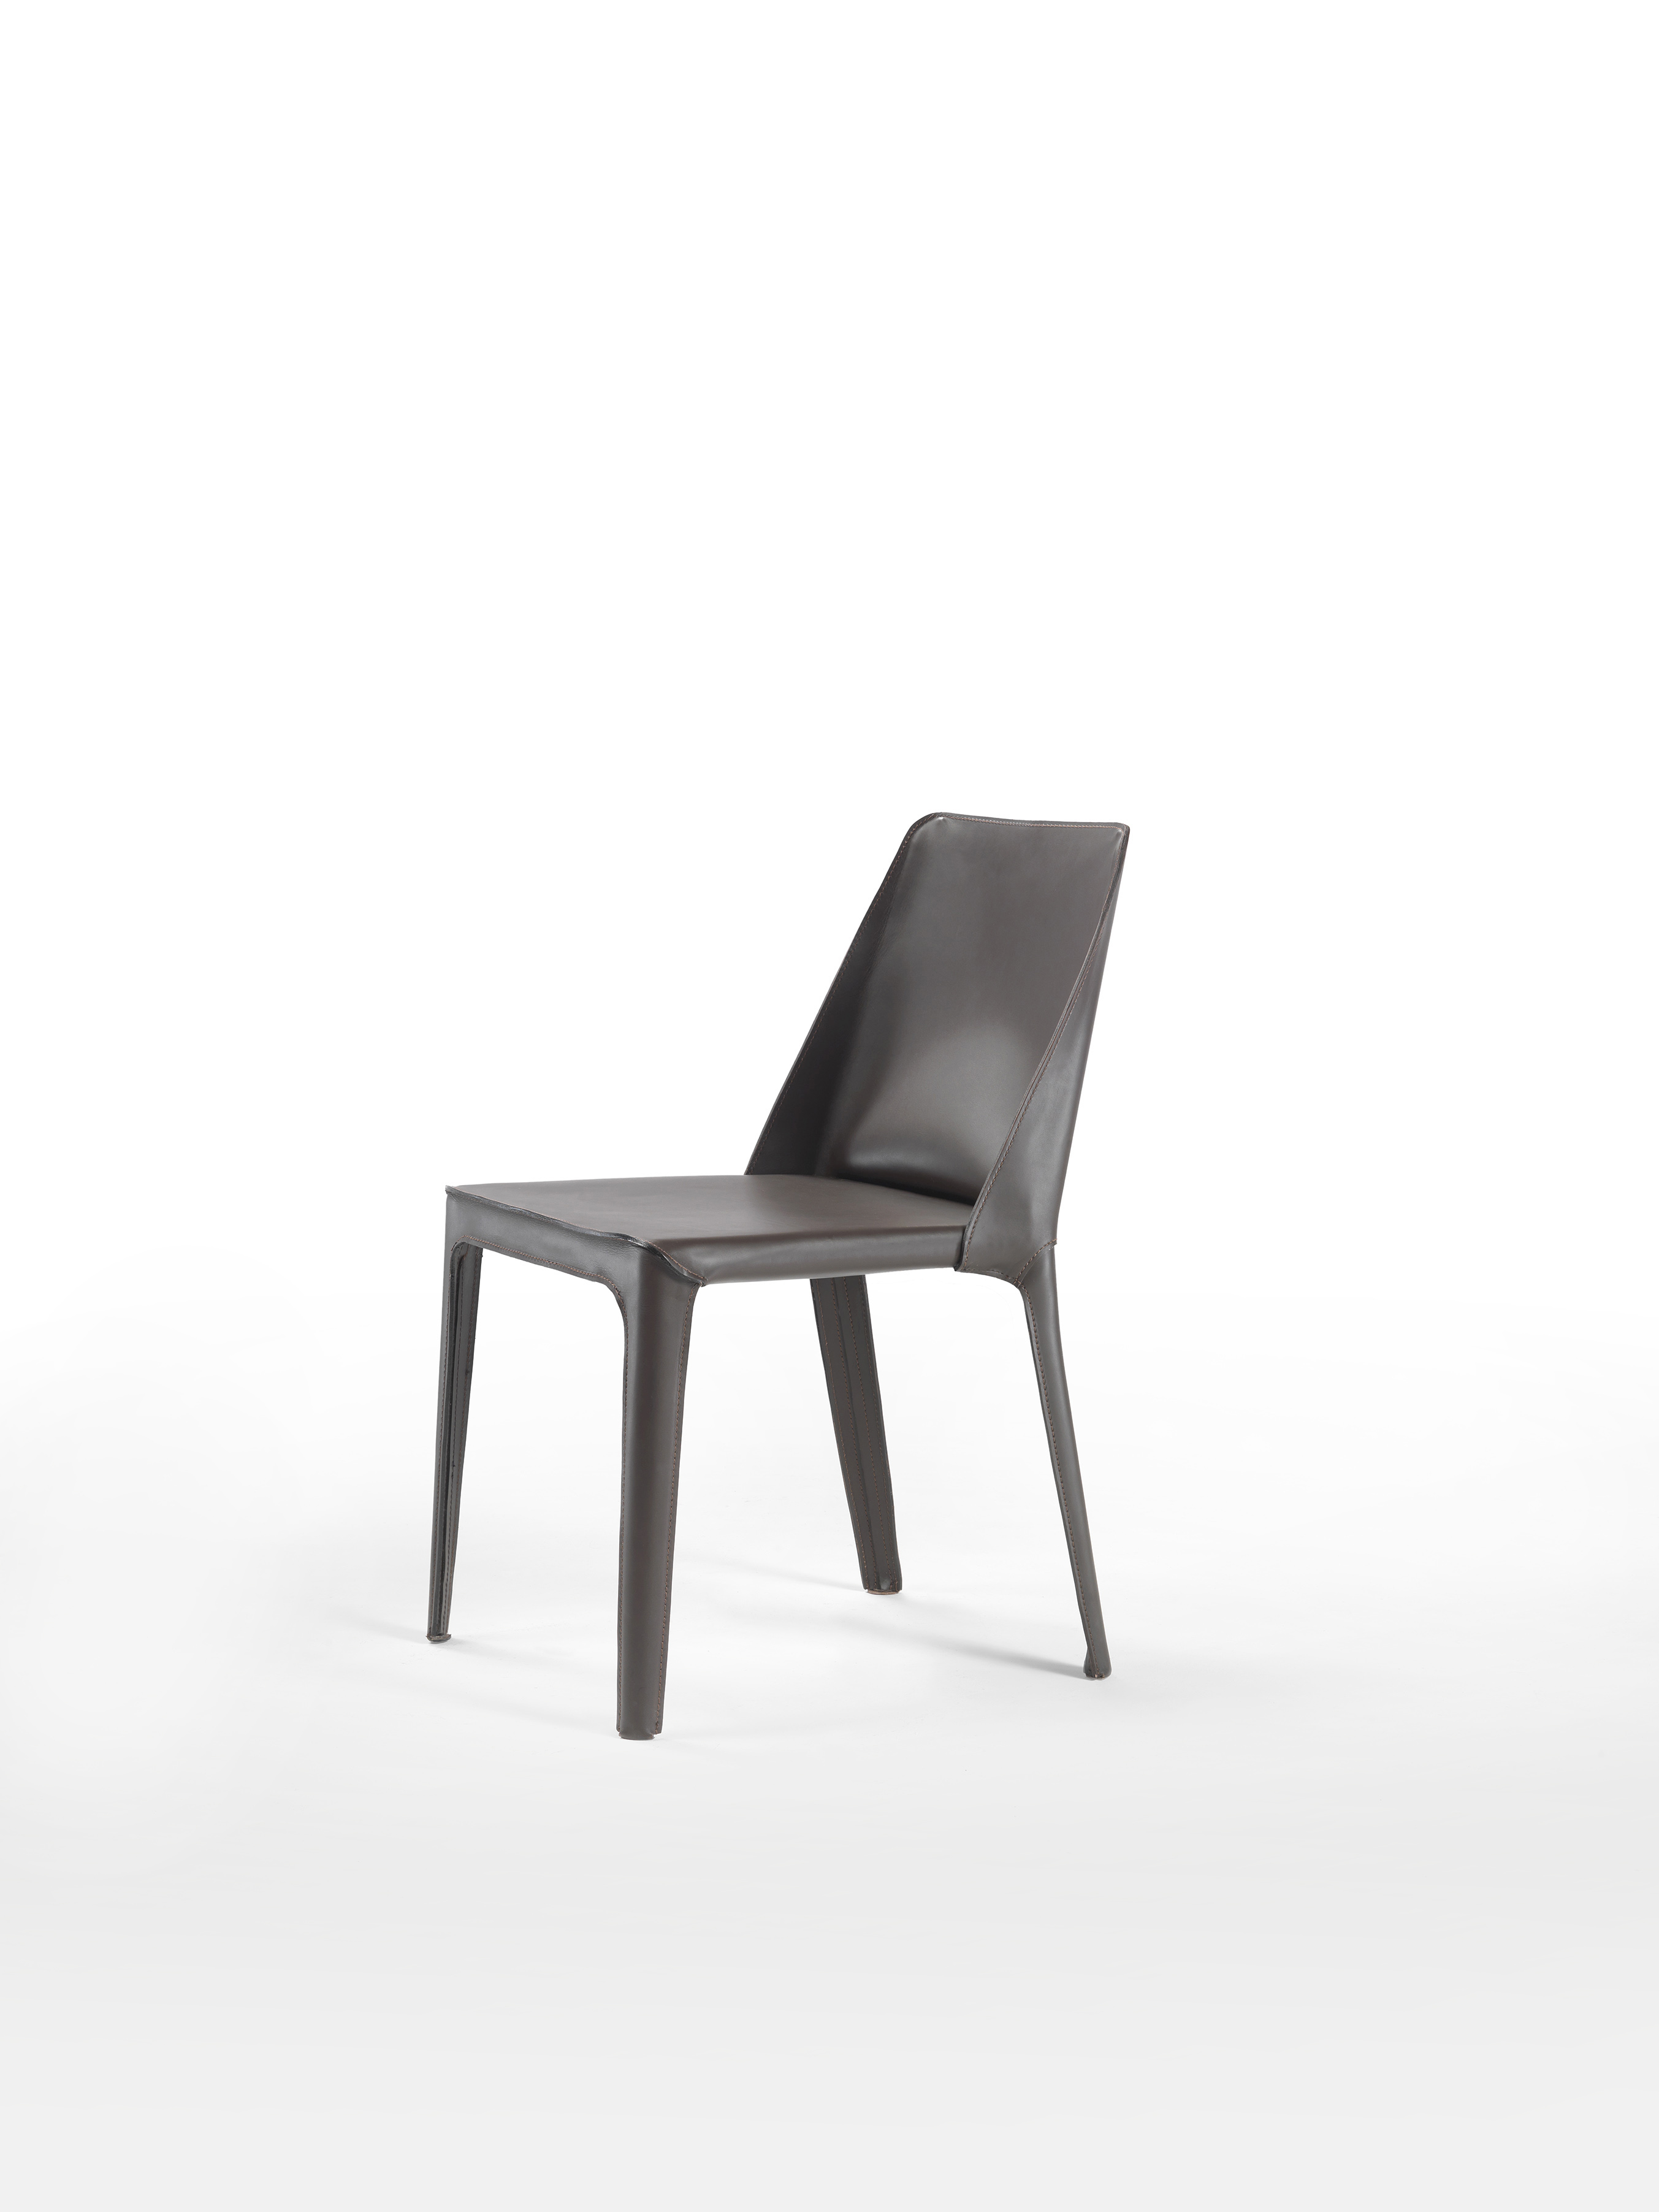 isabel dining chairs fanuli furniture